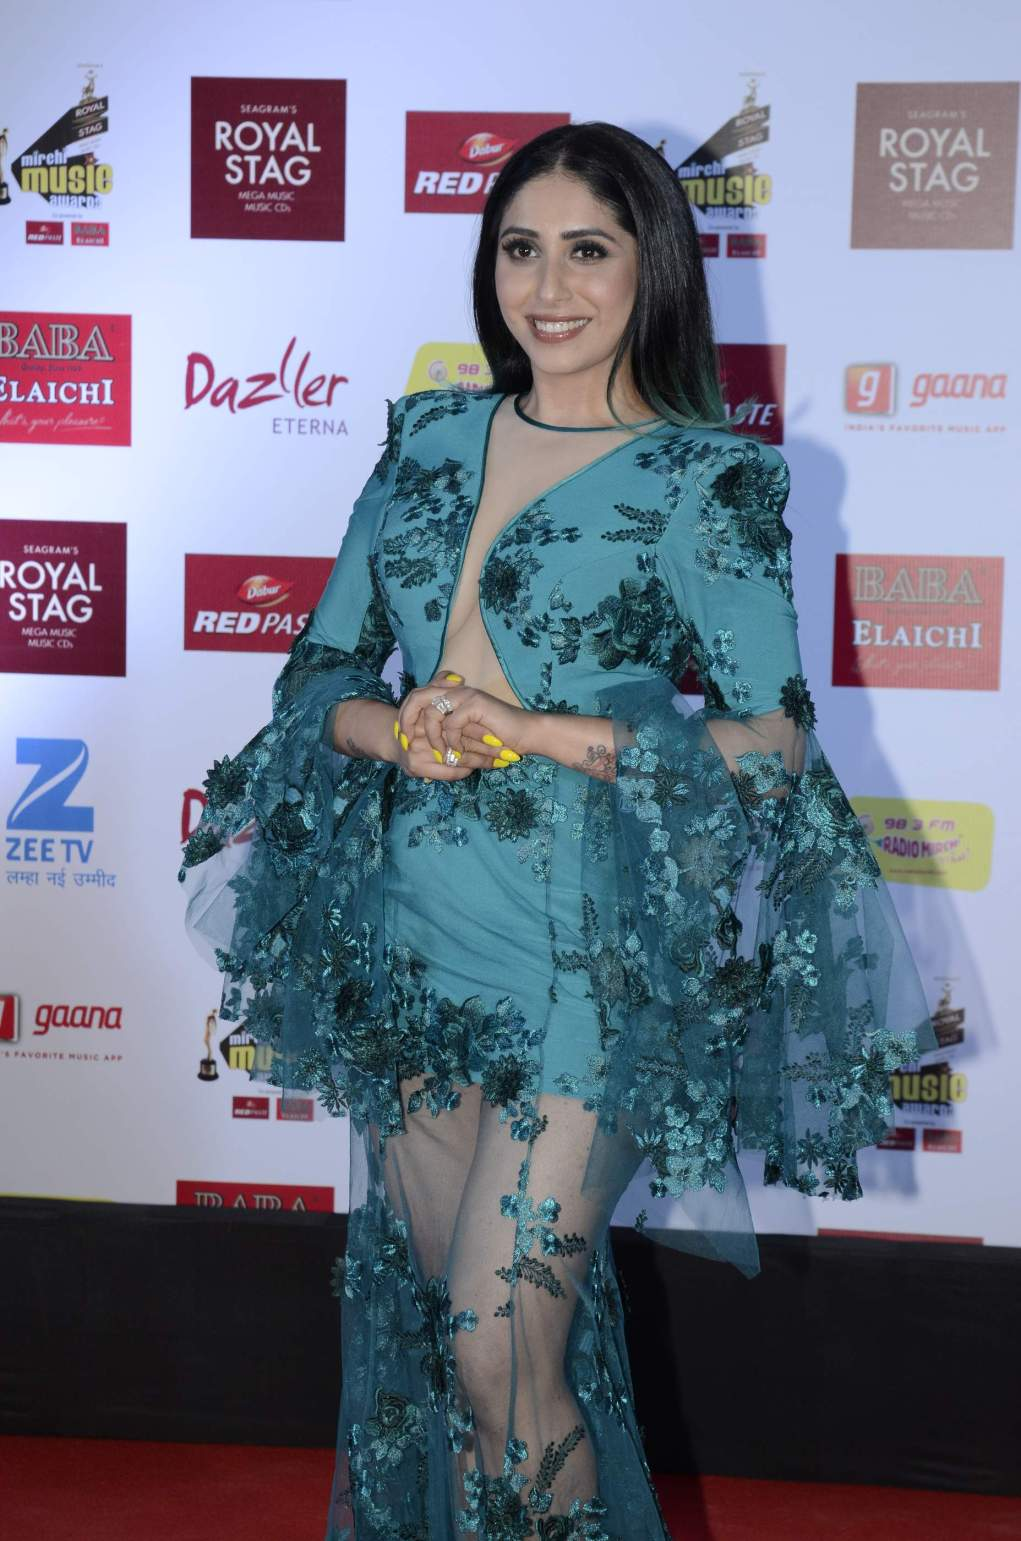 HOT Celebs Dazzle At Mirchi Music Awards Event | Models | Actresses  mirchi music HOT Celebs Dazzle At Mirchi Music Awards Event | Models | Actresses Radio Mirchi Awards Red Carpet 14